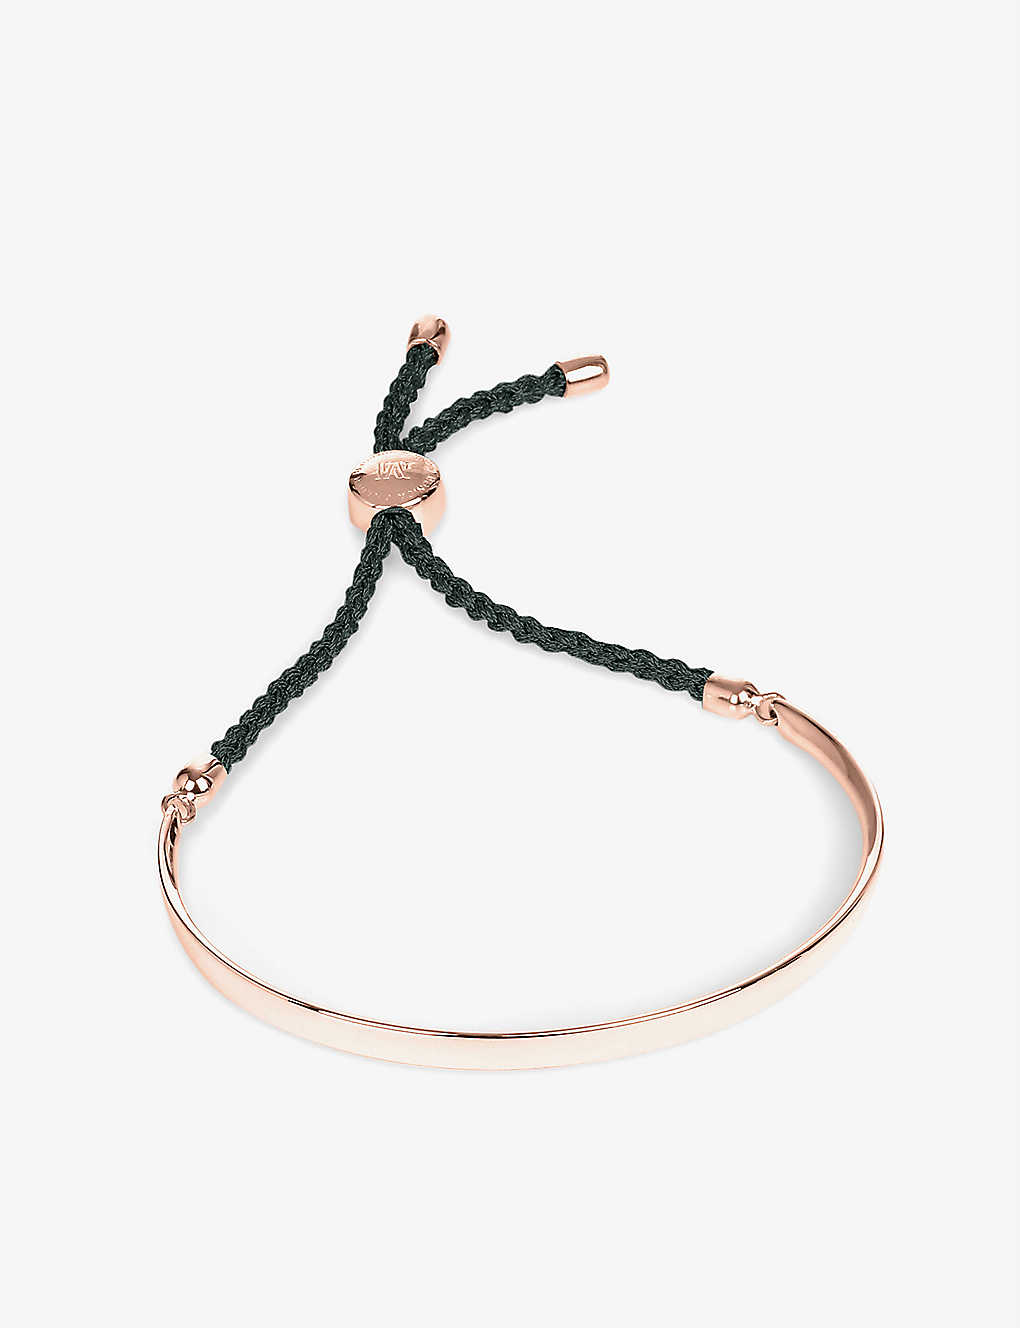 Designer Bracelets - Earrings, Rings & more | Selfridges